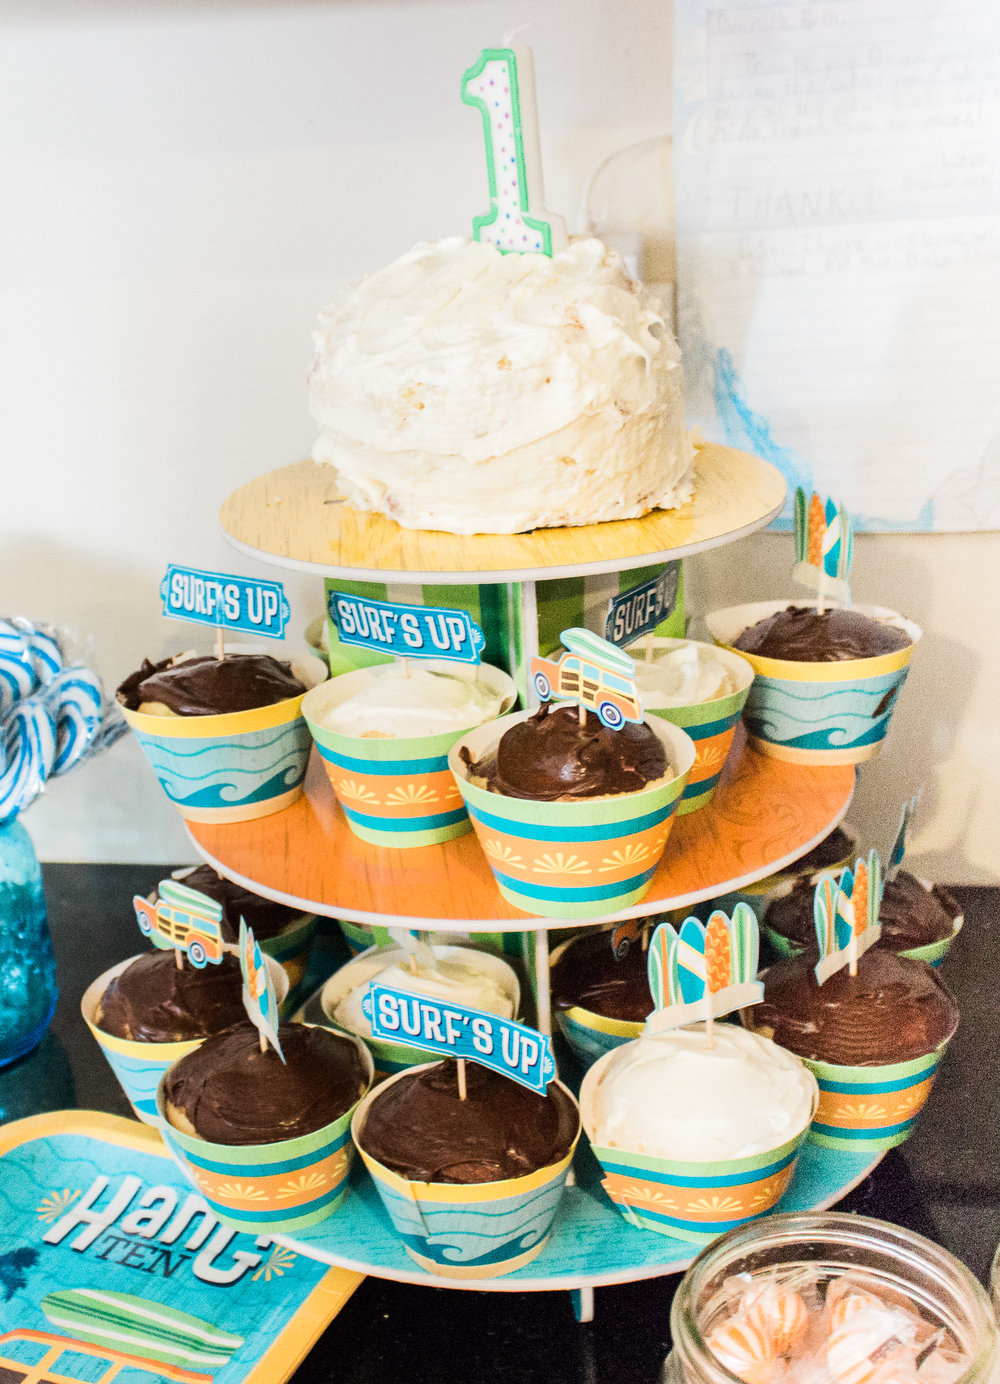 The  Surfs Up Cupcake Wrappers with Picks  was PERFECT for the theme!